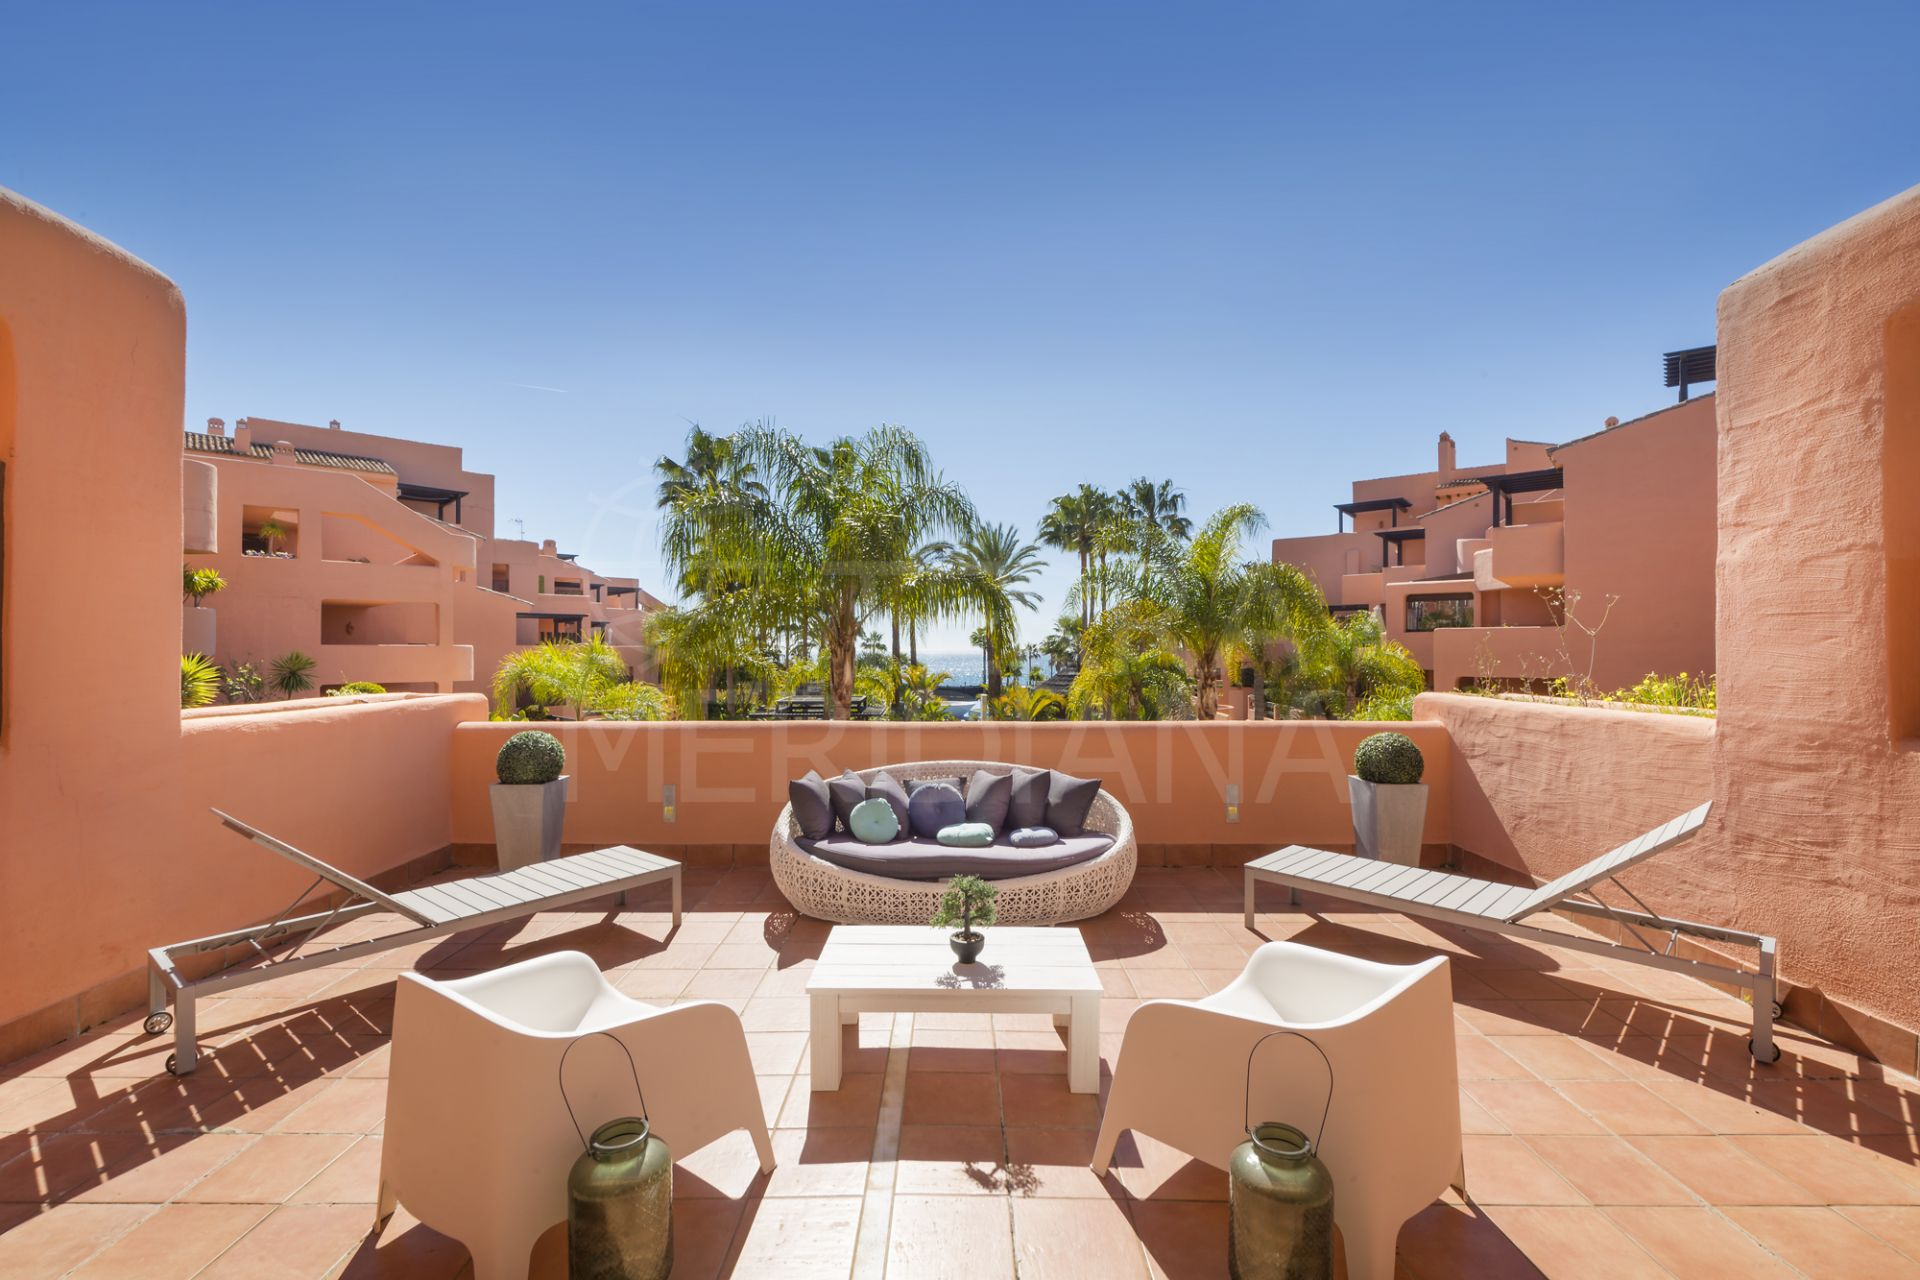 Mediterranean style 2 bedroom penthouse apartment for sale, front line beach in Mar Azul, Estepona